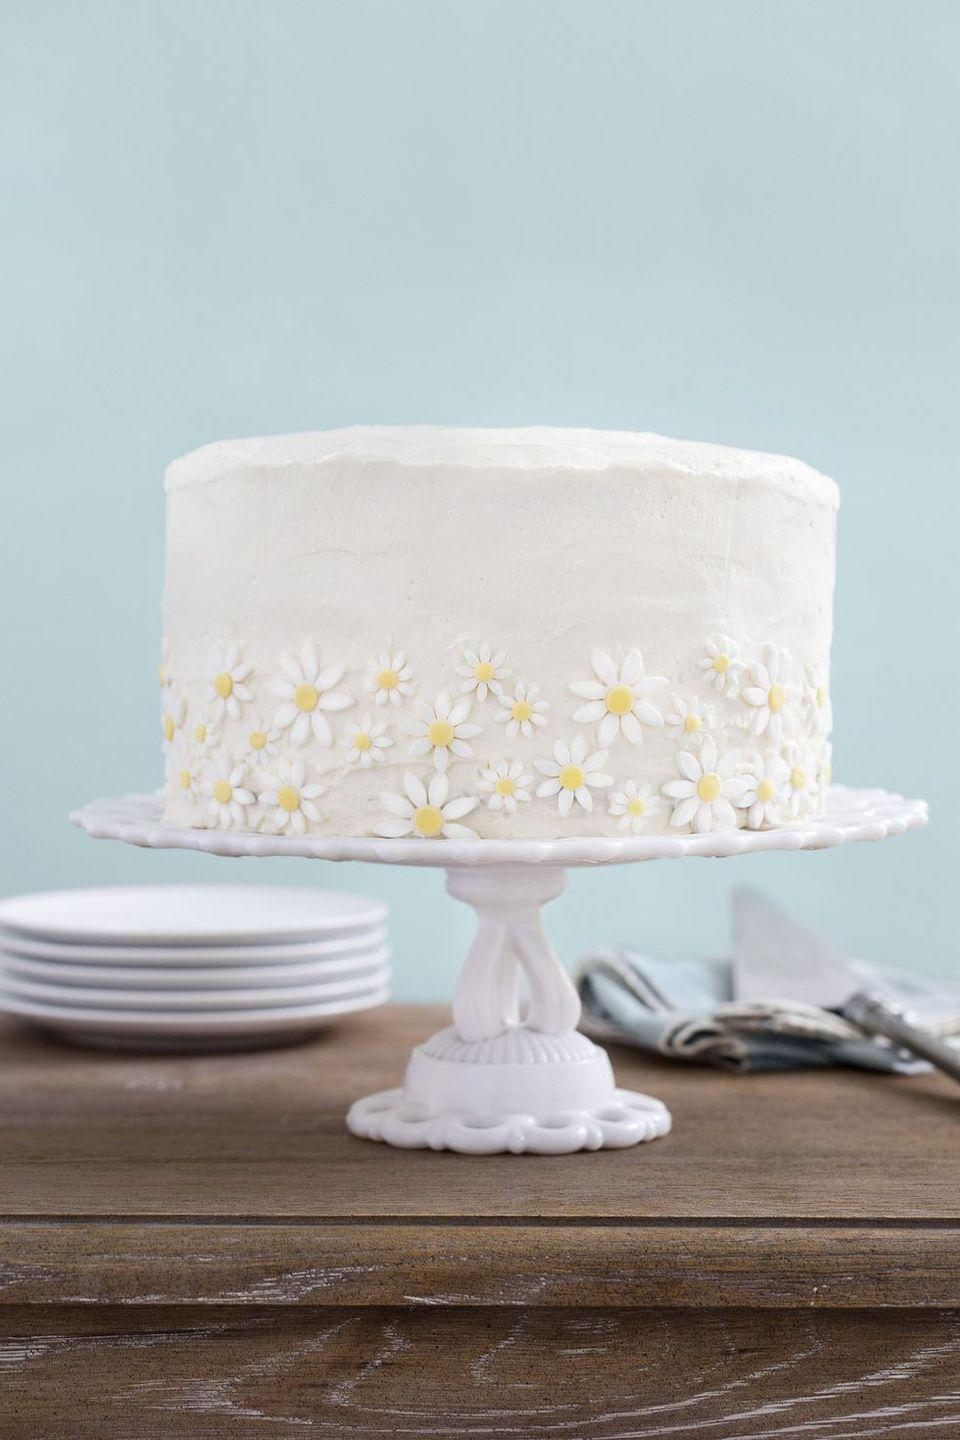 "<p>Fondant daisies (either homemade or store-bought!) make this three-tier cake centerpiece-worthy.</p><p><em><a href=""https://www.countryliving.com/food-drinks/recipes/a35037/lemon-coconut-cake-with-mascarpone-frosting/"" rel=""nofollow noopener"" target=""_blank"" data-ylk=""slk:Get the recipe from Country Living »"" class=""link rapid-noclick-resp"">Get the recipe from Country Living »</a></em></p>"